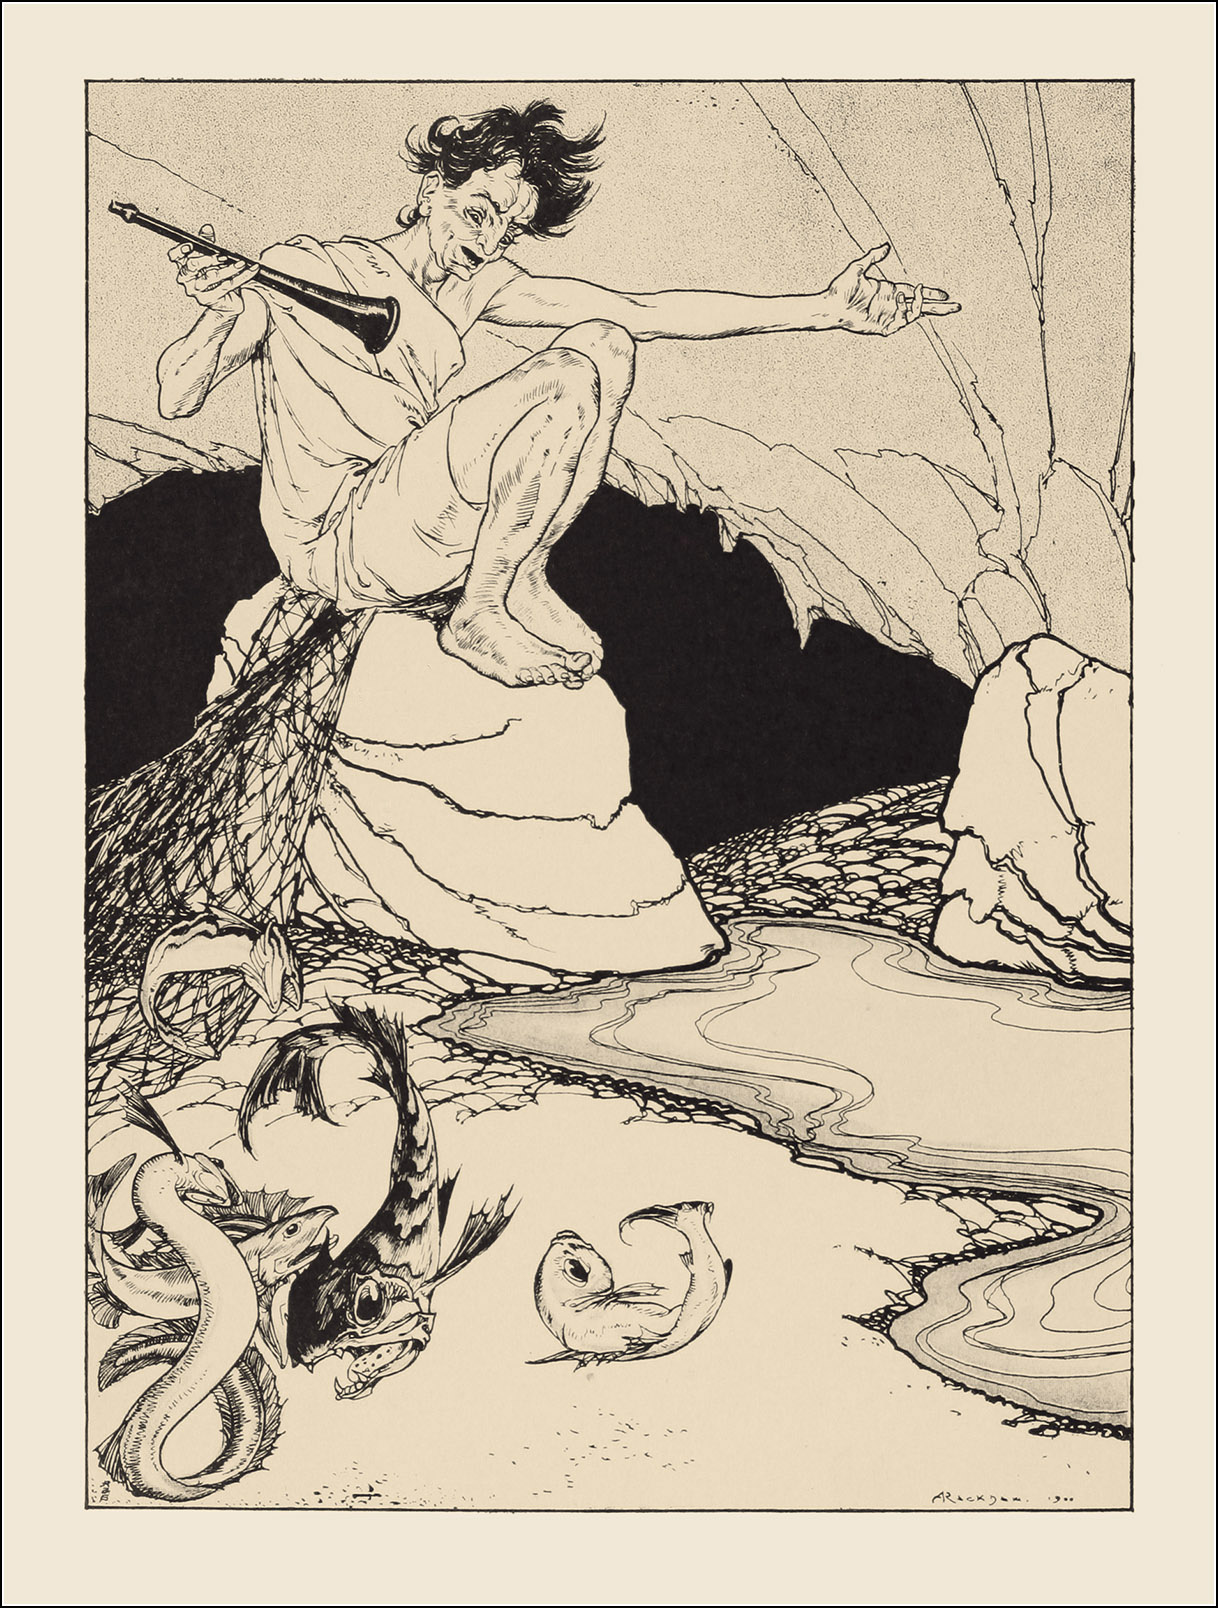 Arthur Rackham, The land of enchantment